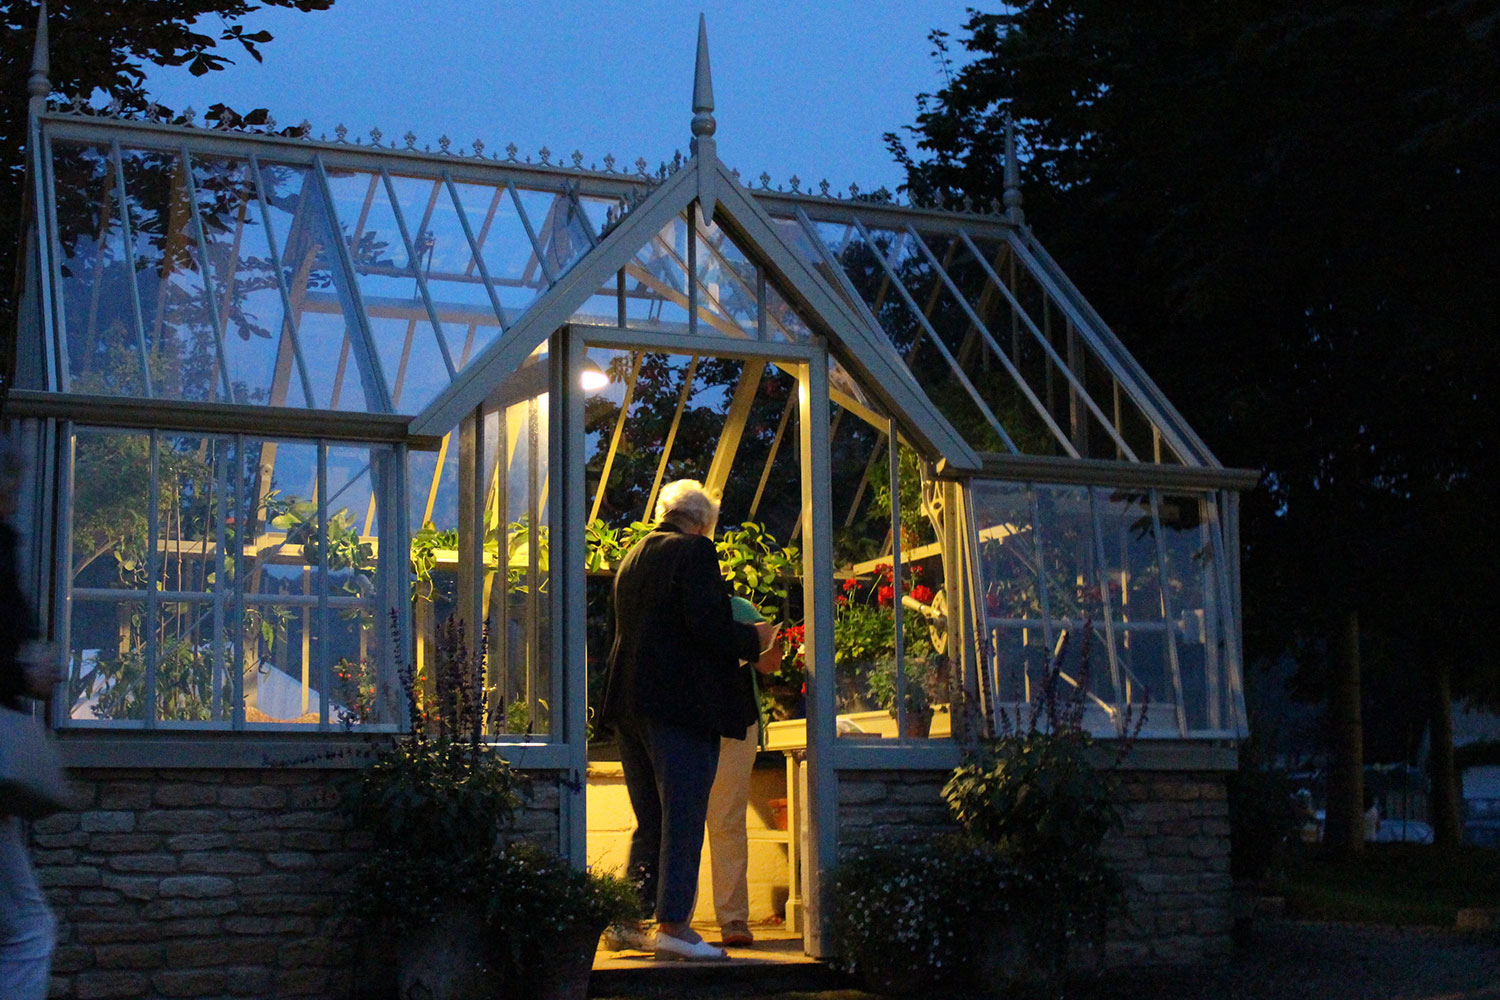 Greenhouse lights in use (Alitex greenhouse accessories)